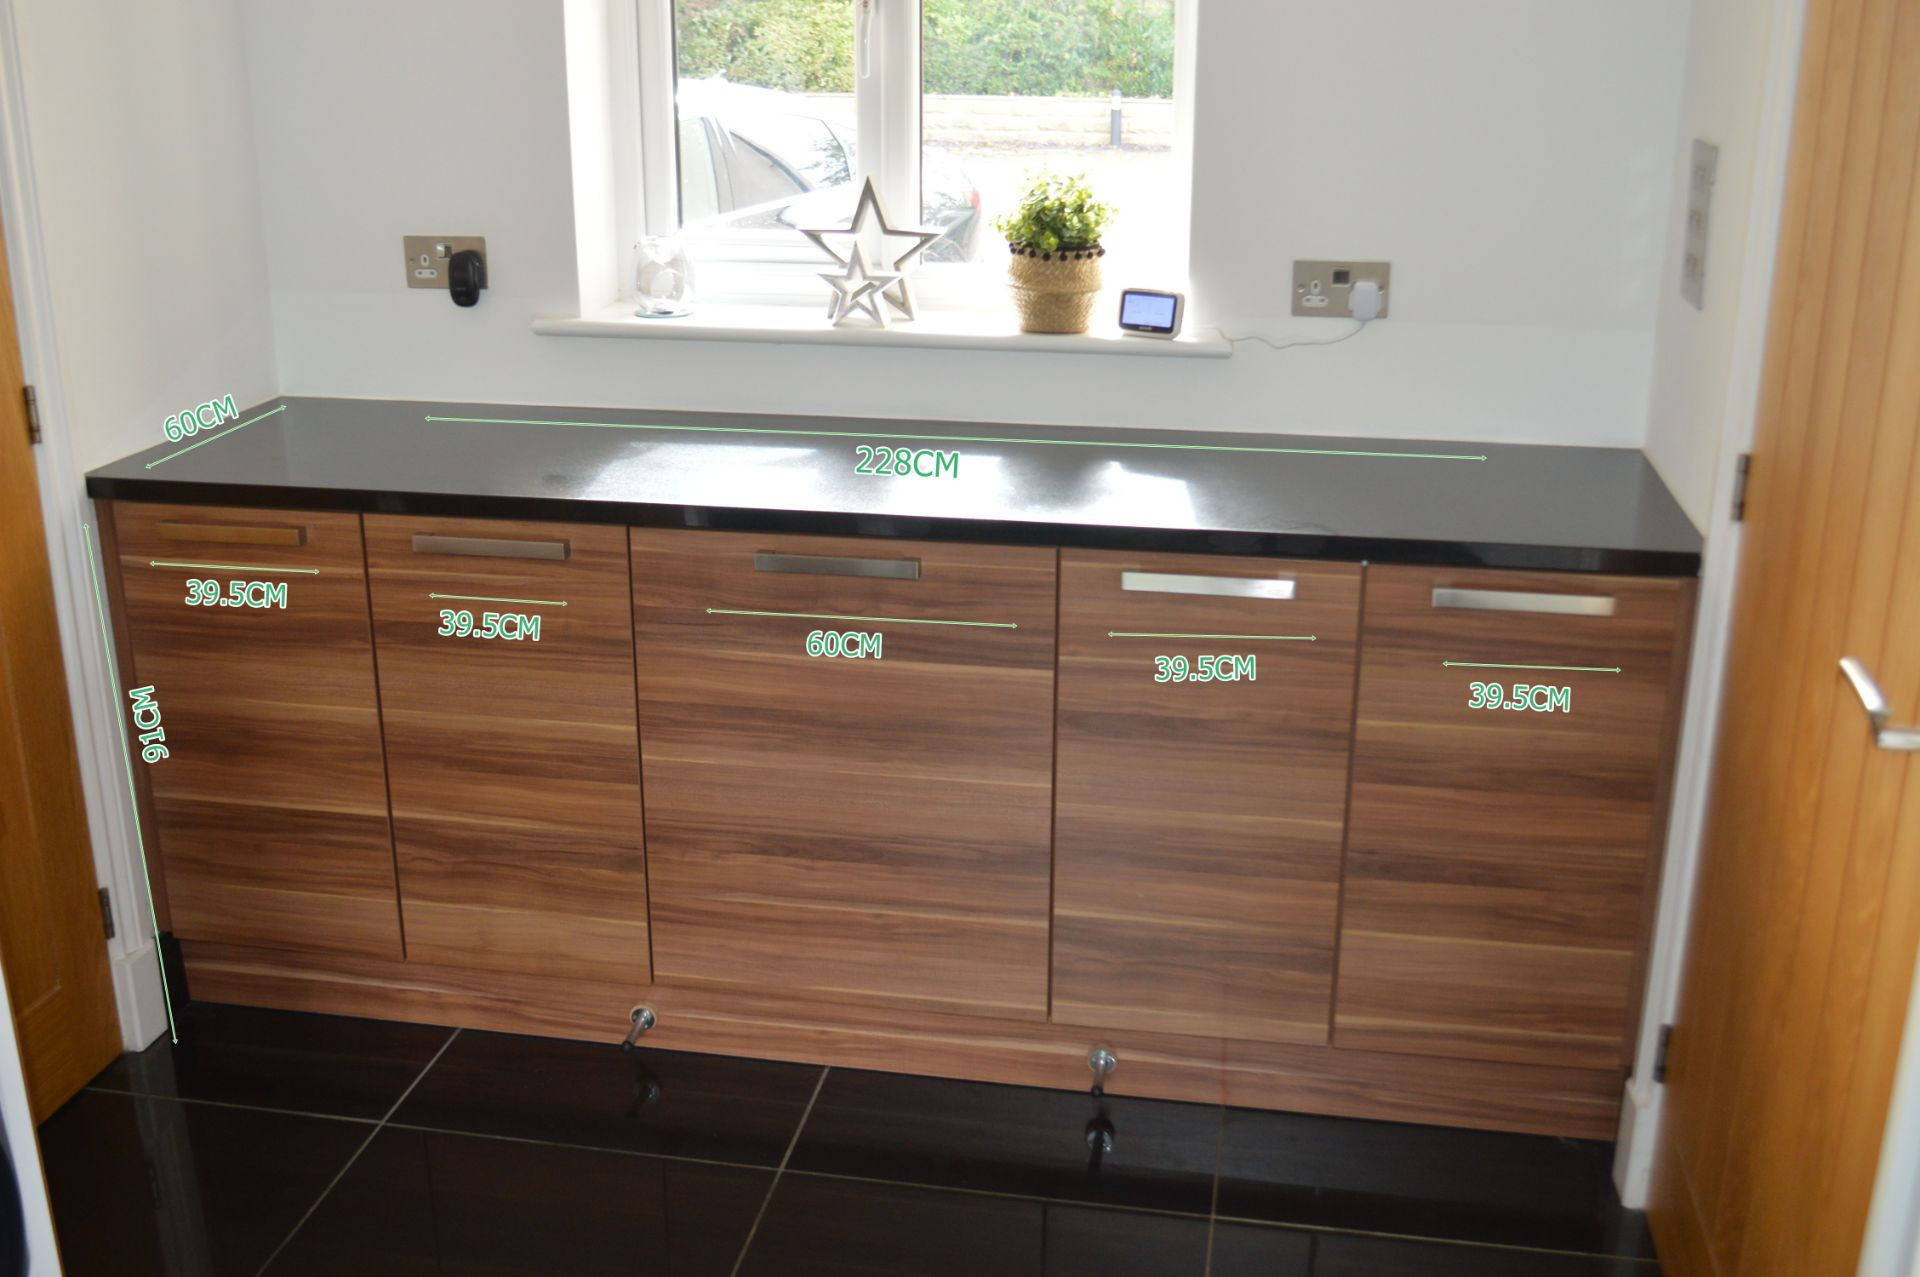 1 x Contemporary Bespoke Fitted Kitchen With Integrated Neff Branded Appliances, Quartz Worktops - Image 34 of 52